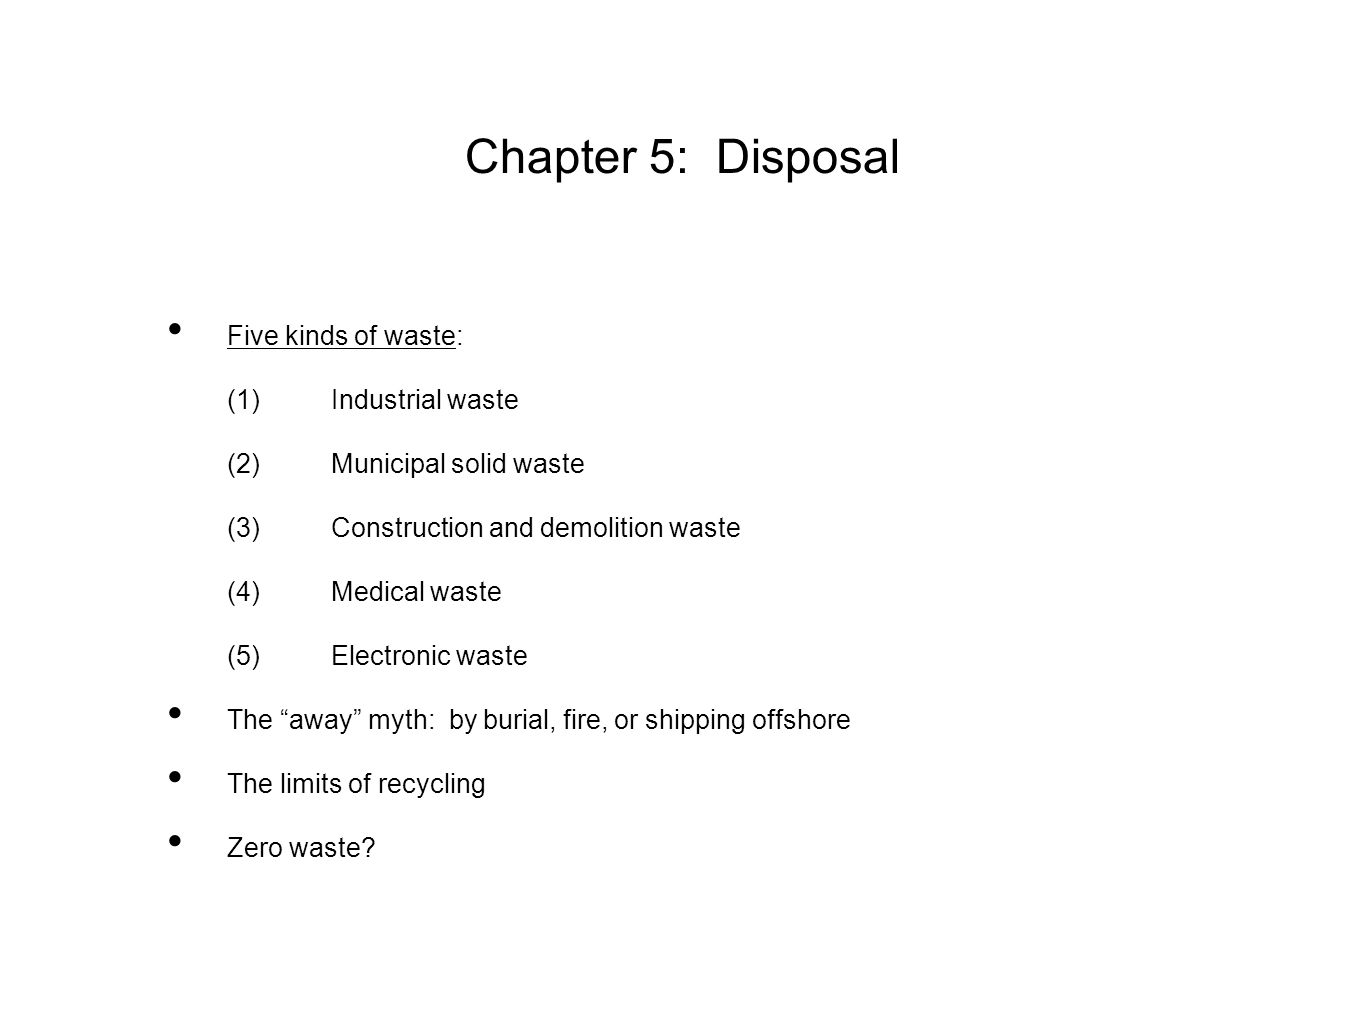 Chapter 5: Disposal Five kinds of waste: (1)Industrial waste (2)Municipal solid waste (3)Construction and demolition waste (4)Medical waste (5)Electronic waste The away myth: by burial, fire, or shipping offshore The limits of recycling Zero waste